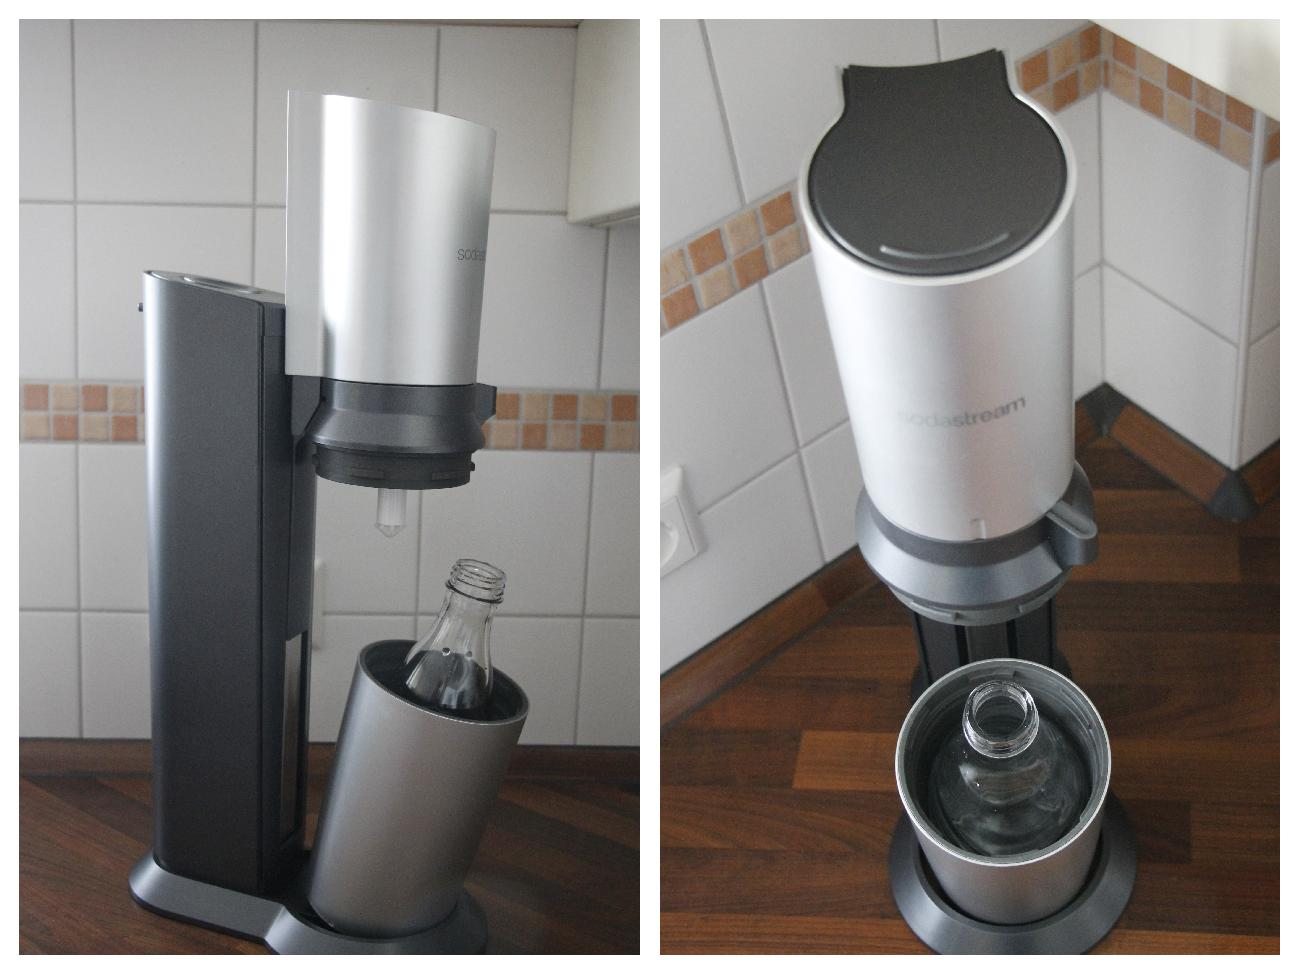 der trinkwassersprudler sodastream crystal im test inkl gewinnspiel lavendelblog. Black Bedroom Furniture Sets. Home Design Ideas